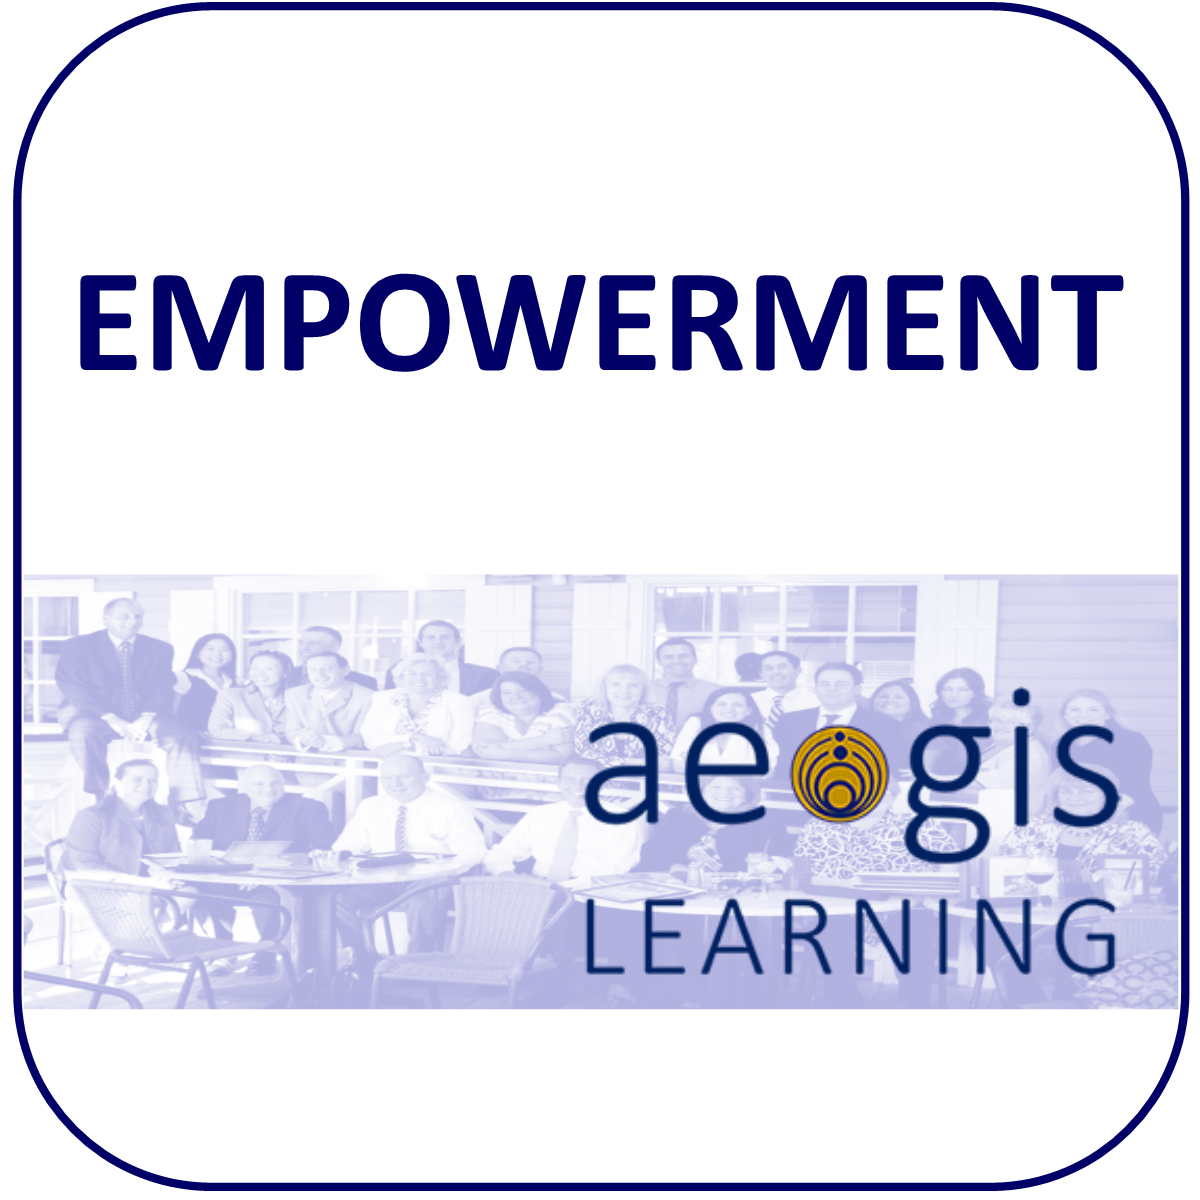 Empowerment and Delegation from Aegis Learning